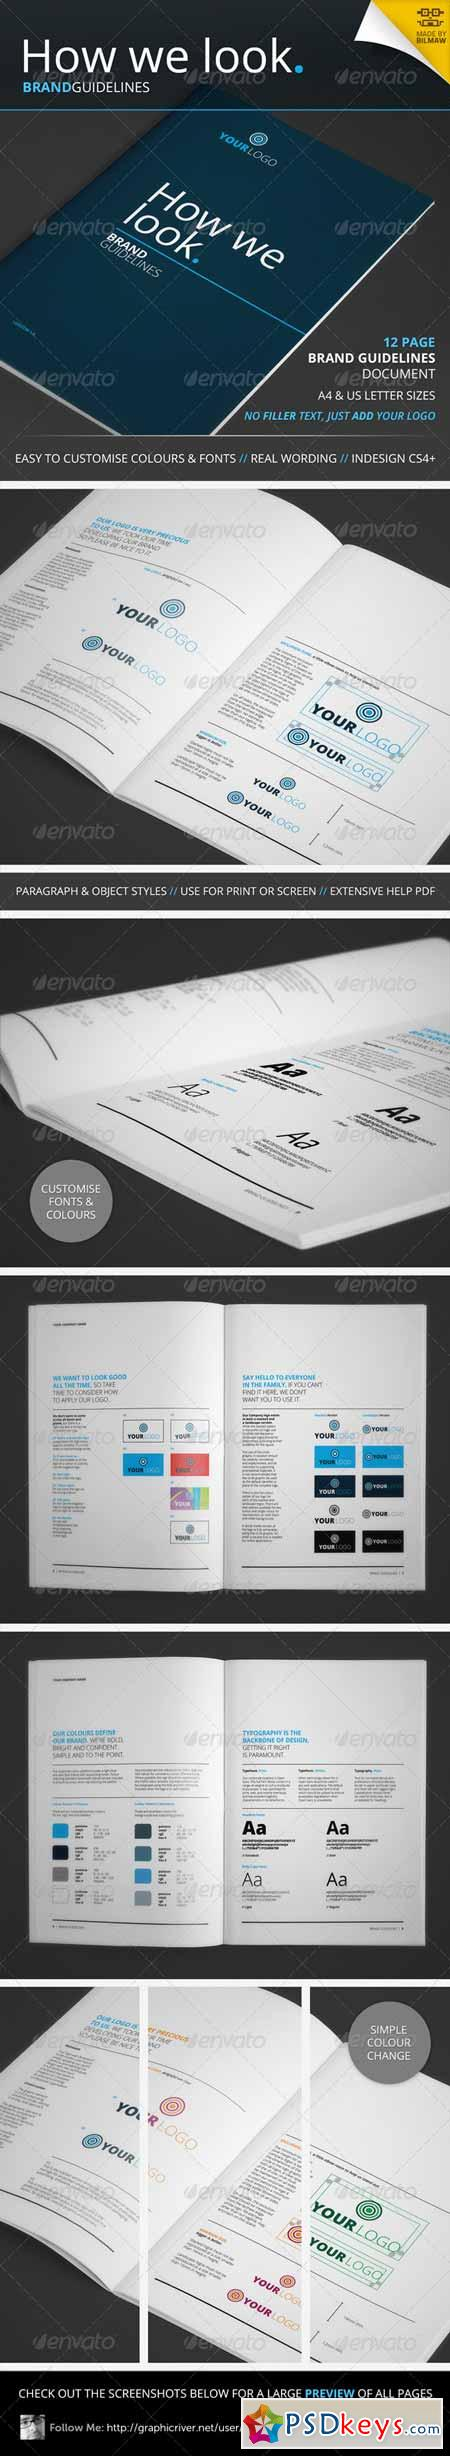 How We Look - Brand Guidelines 4355542